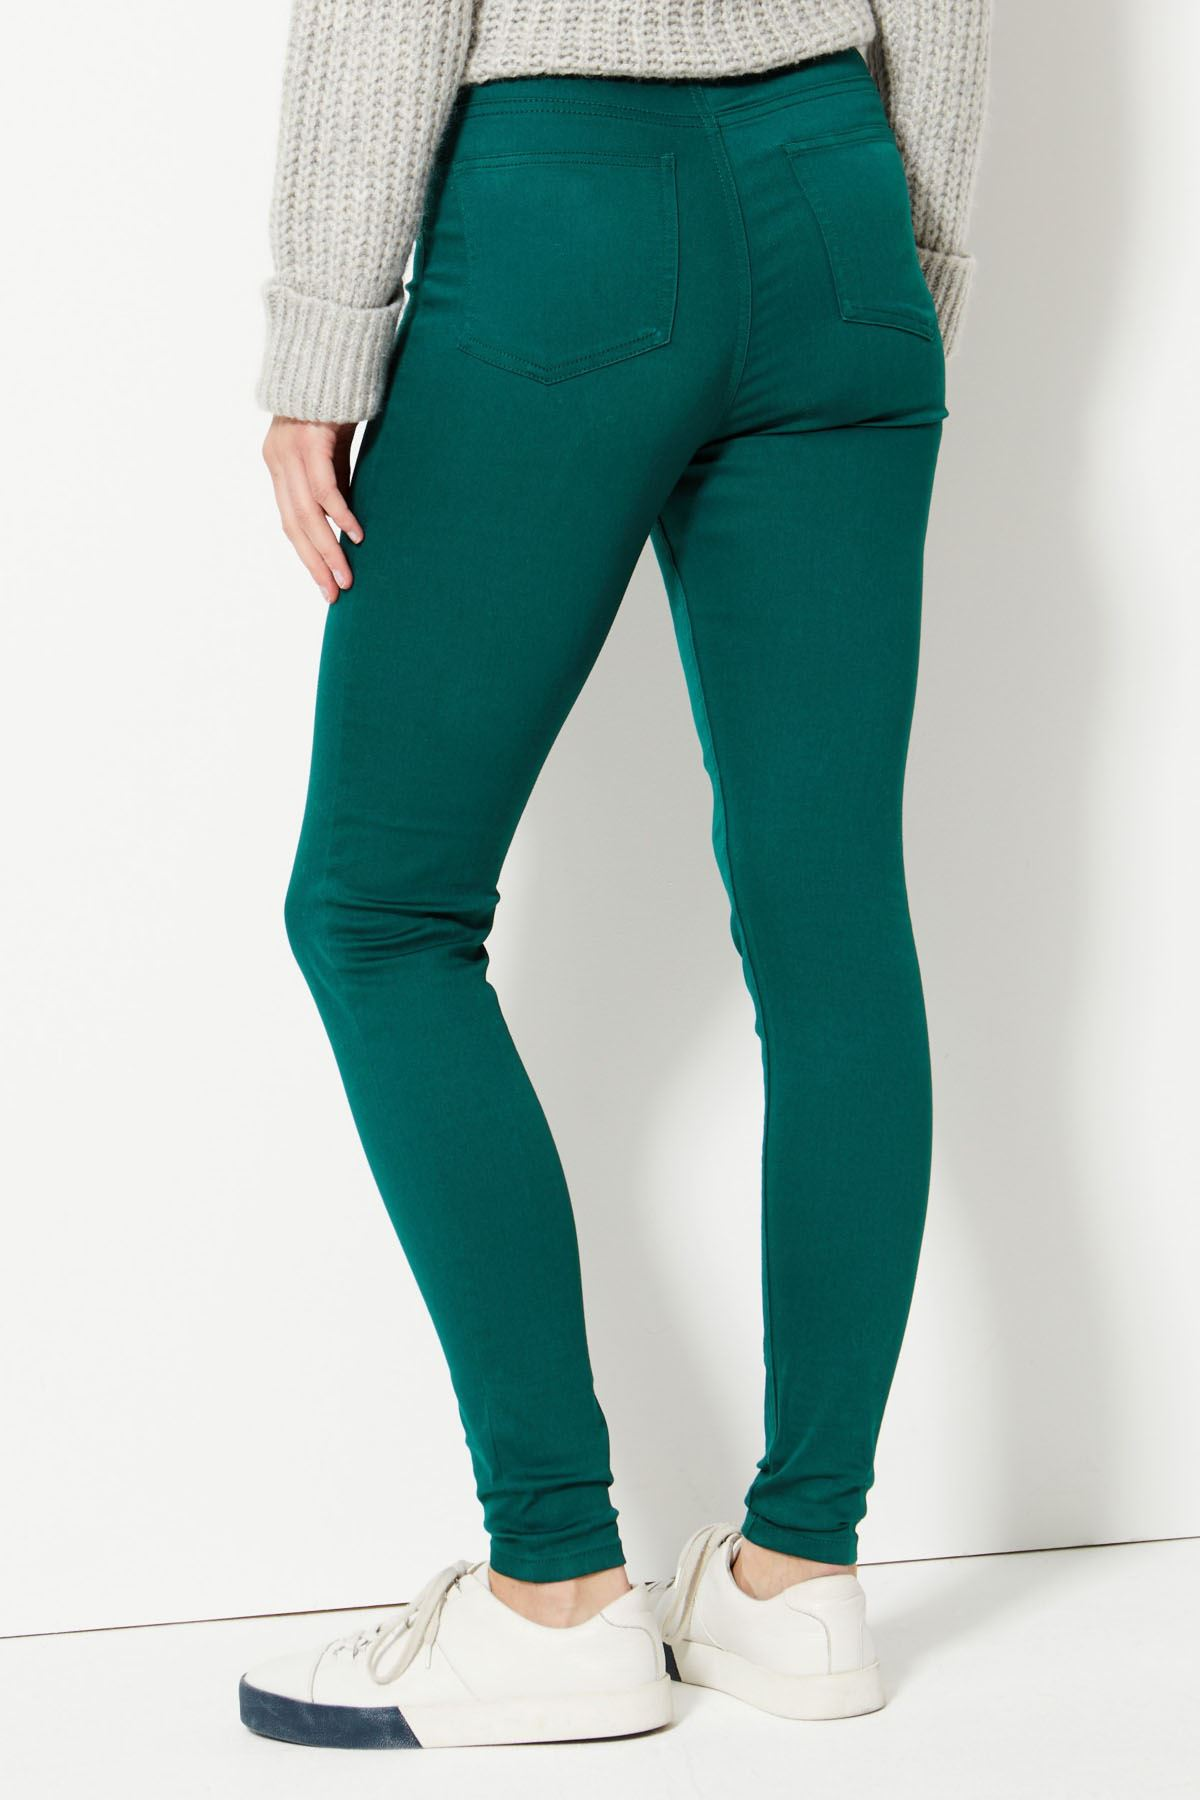 NEW-Ex-M-amp-S-Womens-Stretch-Fit-High-Waist-Skinny-Jeggings-Size-8-10-12-14-16-18 thumbnail 4